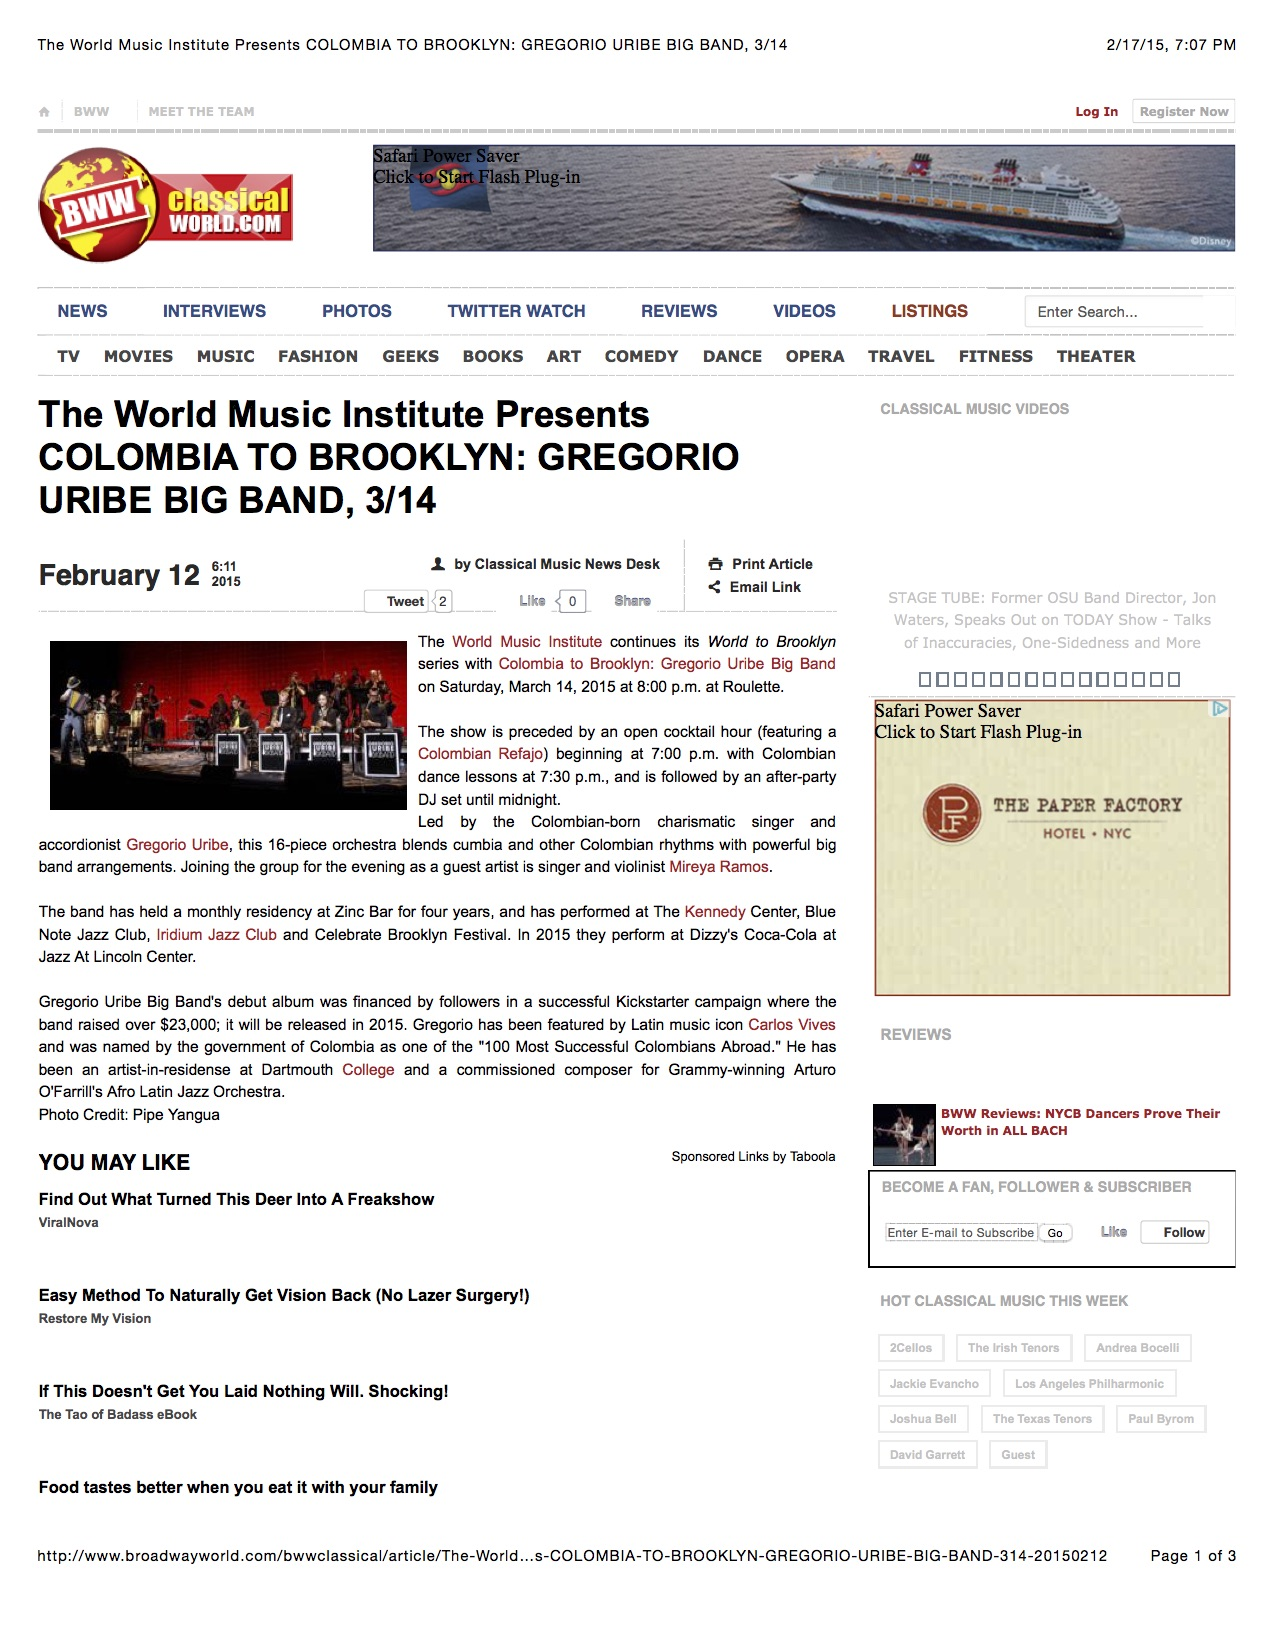 From Colombia to Brooklyn - World Music Institute